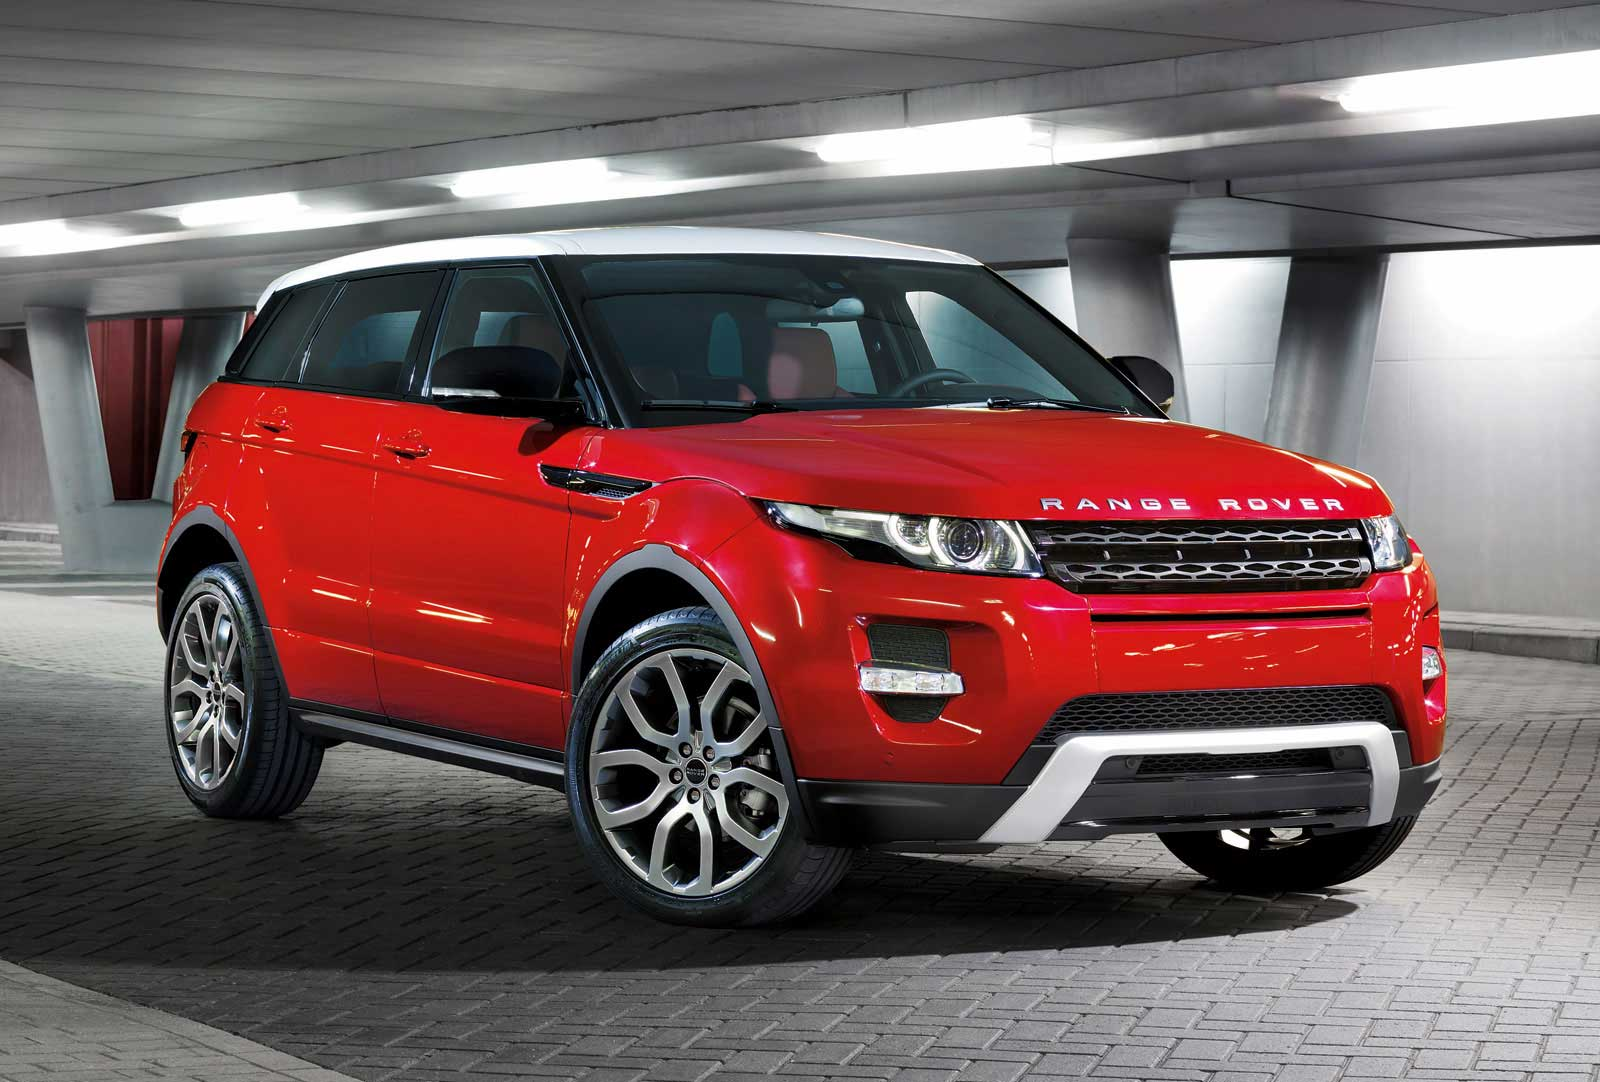 2012 land rover range rover evoque car review price. Black Bedroom Furniture Sets. Home Design Ideas